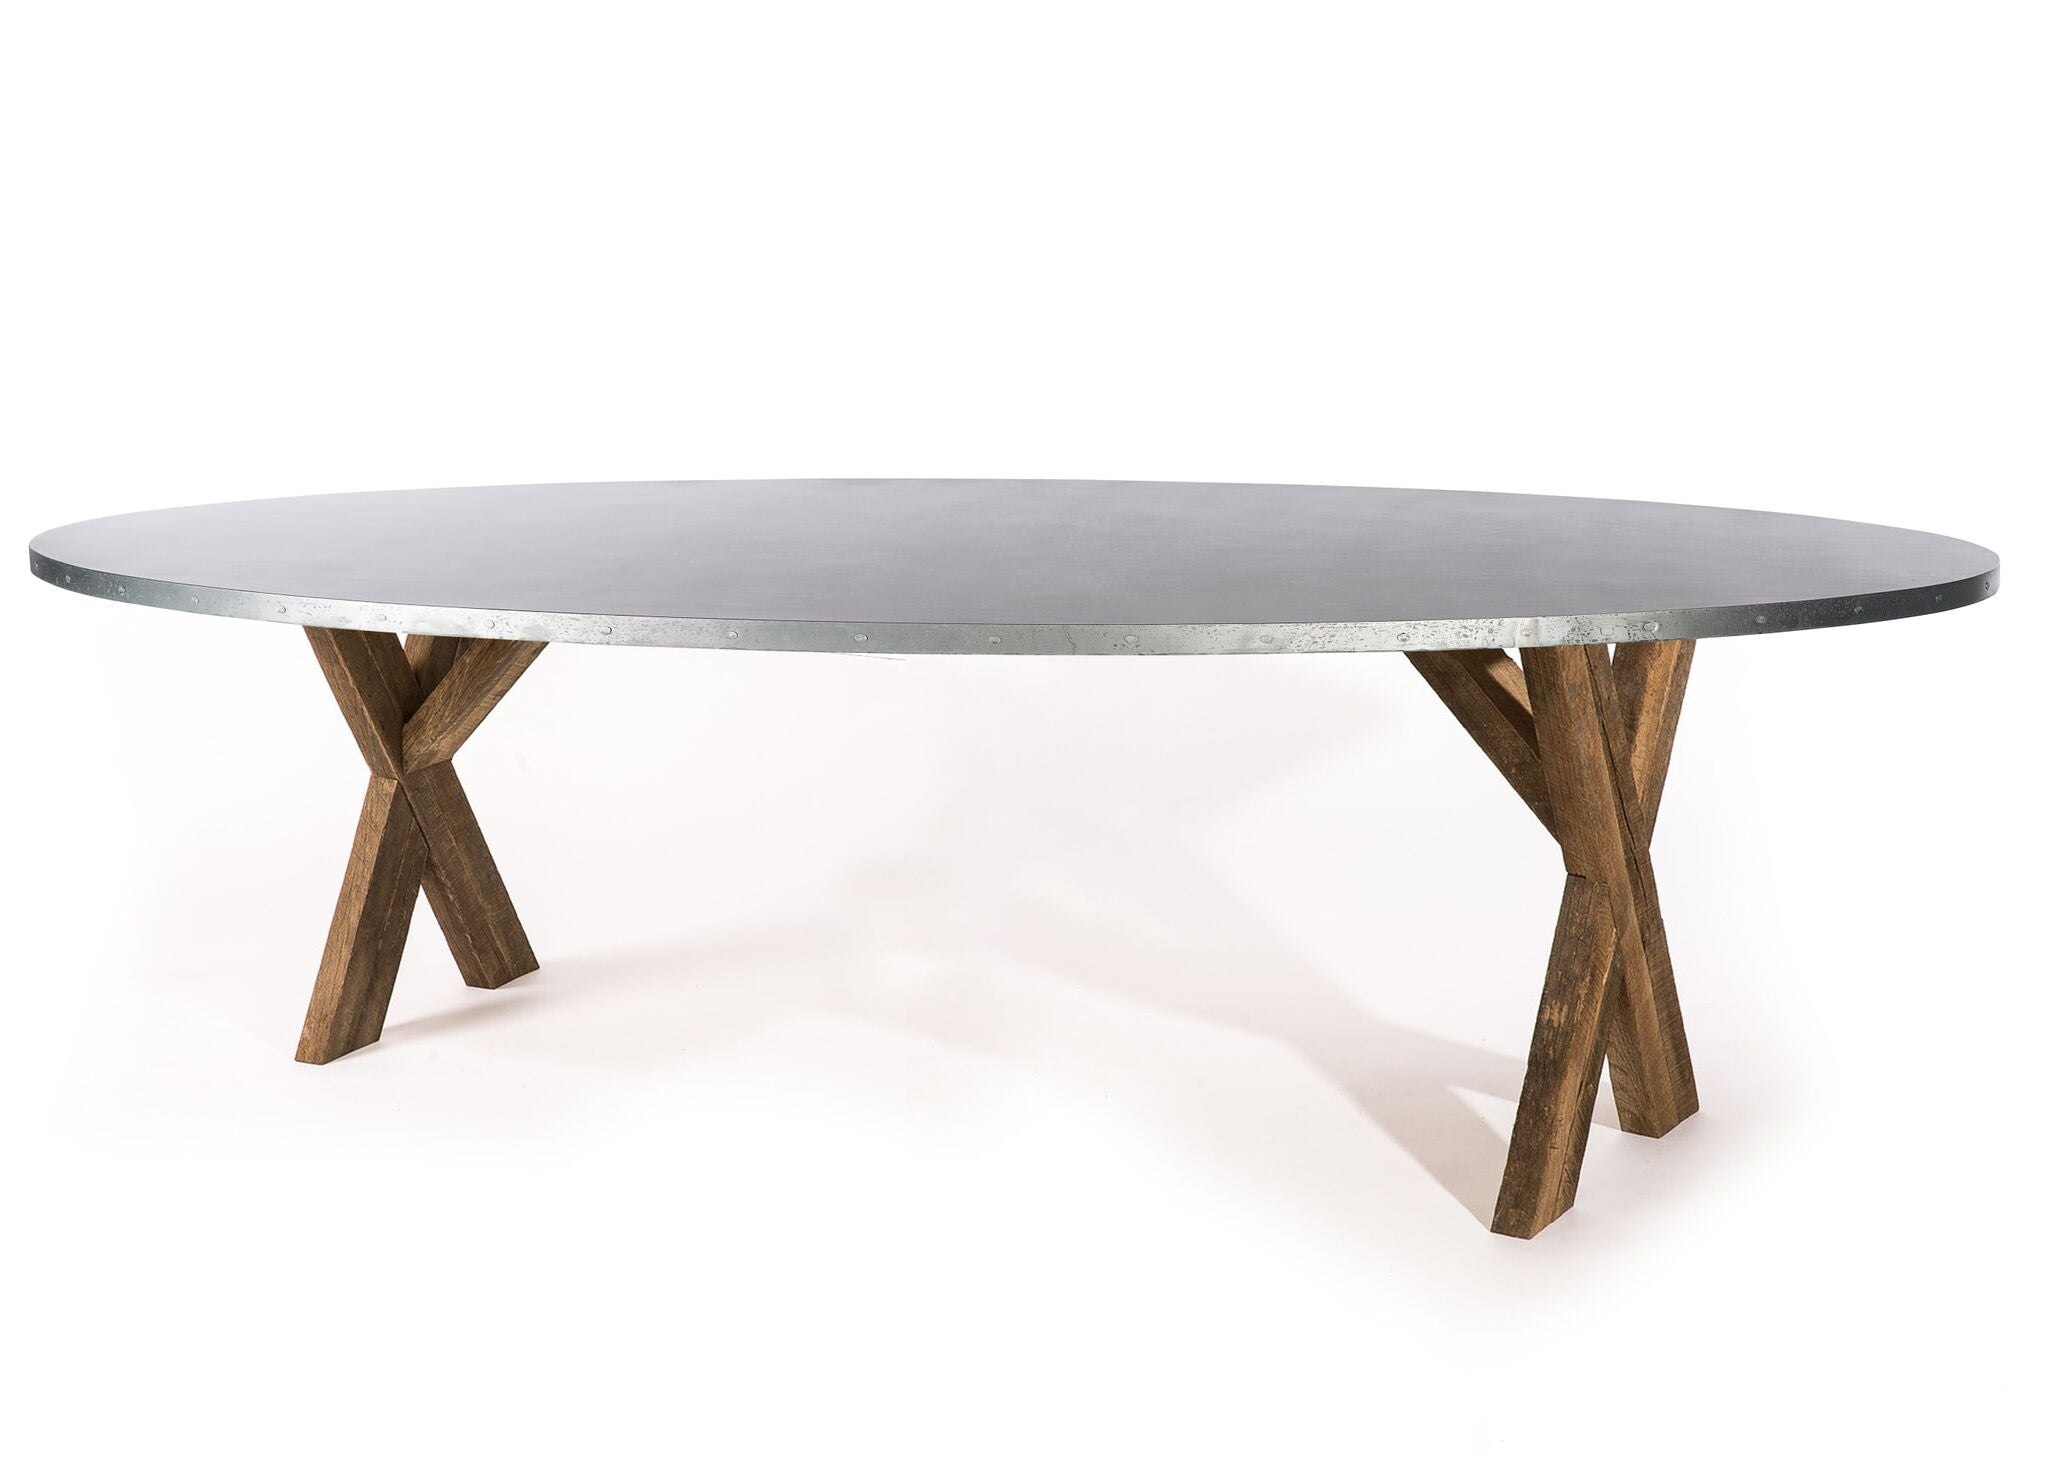 Zinc Oval Tables | X Base Trestle Table | CLASSIC | Natural Ash | CUSTOM SIZE L 60.00 W 37.00 H undefined |